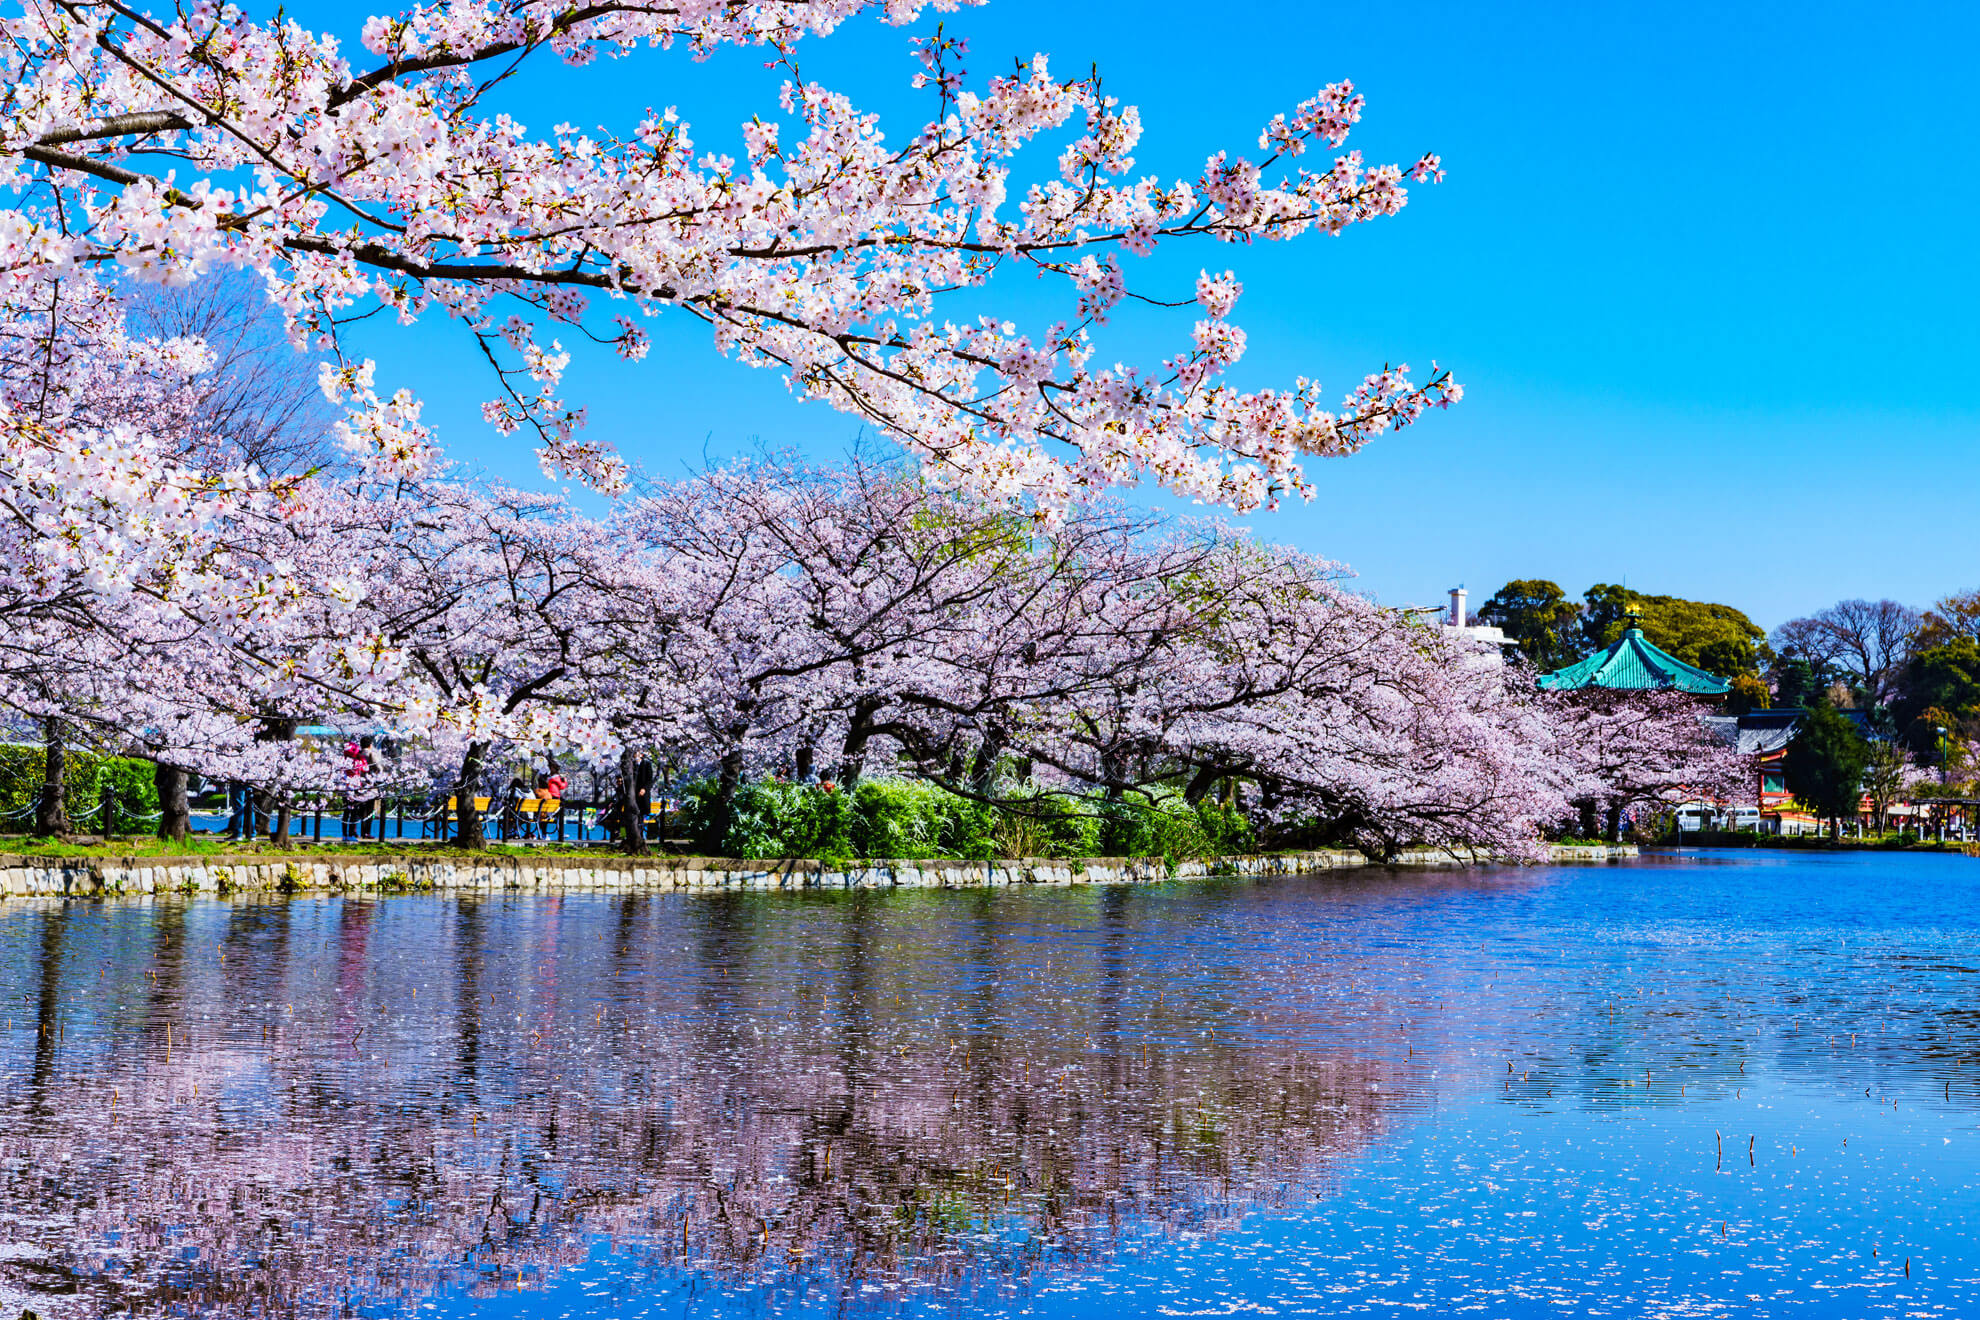 Spring Fest: The Cherry Blossoms of Tokyo